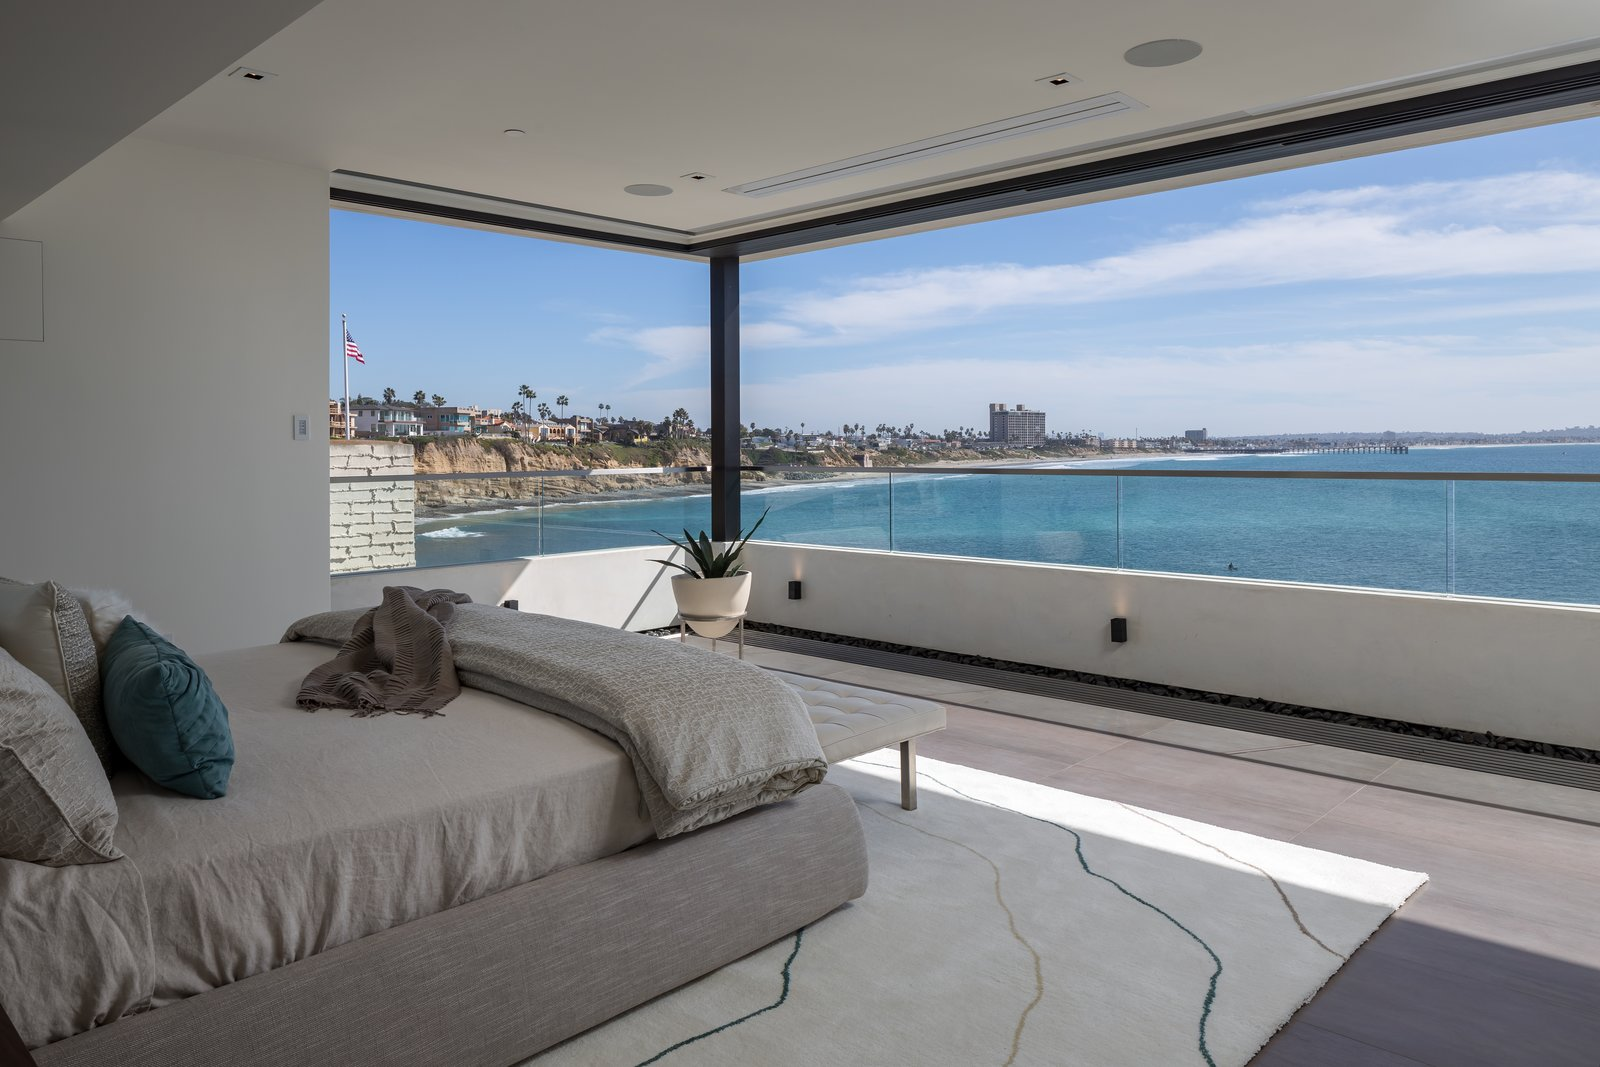 Bedroom  This New Cliffside La Jolla Residence Brings The Outdoors In with Views of One of California's Most Iconic Surf Breaks